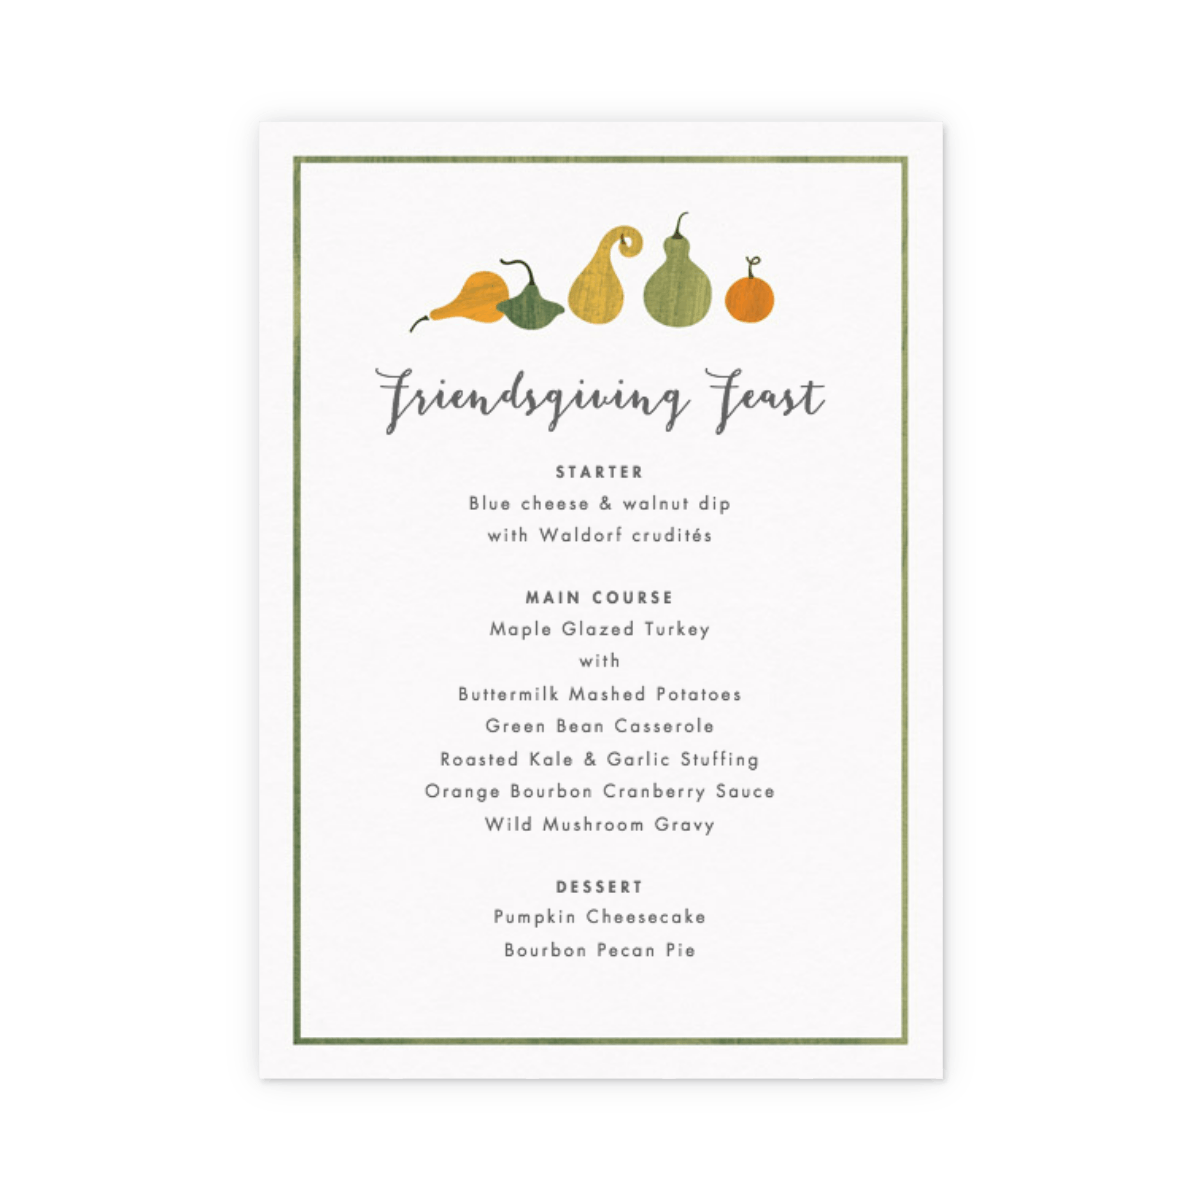 Https%3a%2f%2fwww.papier.com%2fproduct image%2f46146%2f4%2fthanksgiving gourds 11383 front 1536319788.png?ixlib=rb 1.1